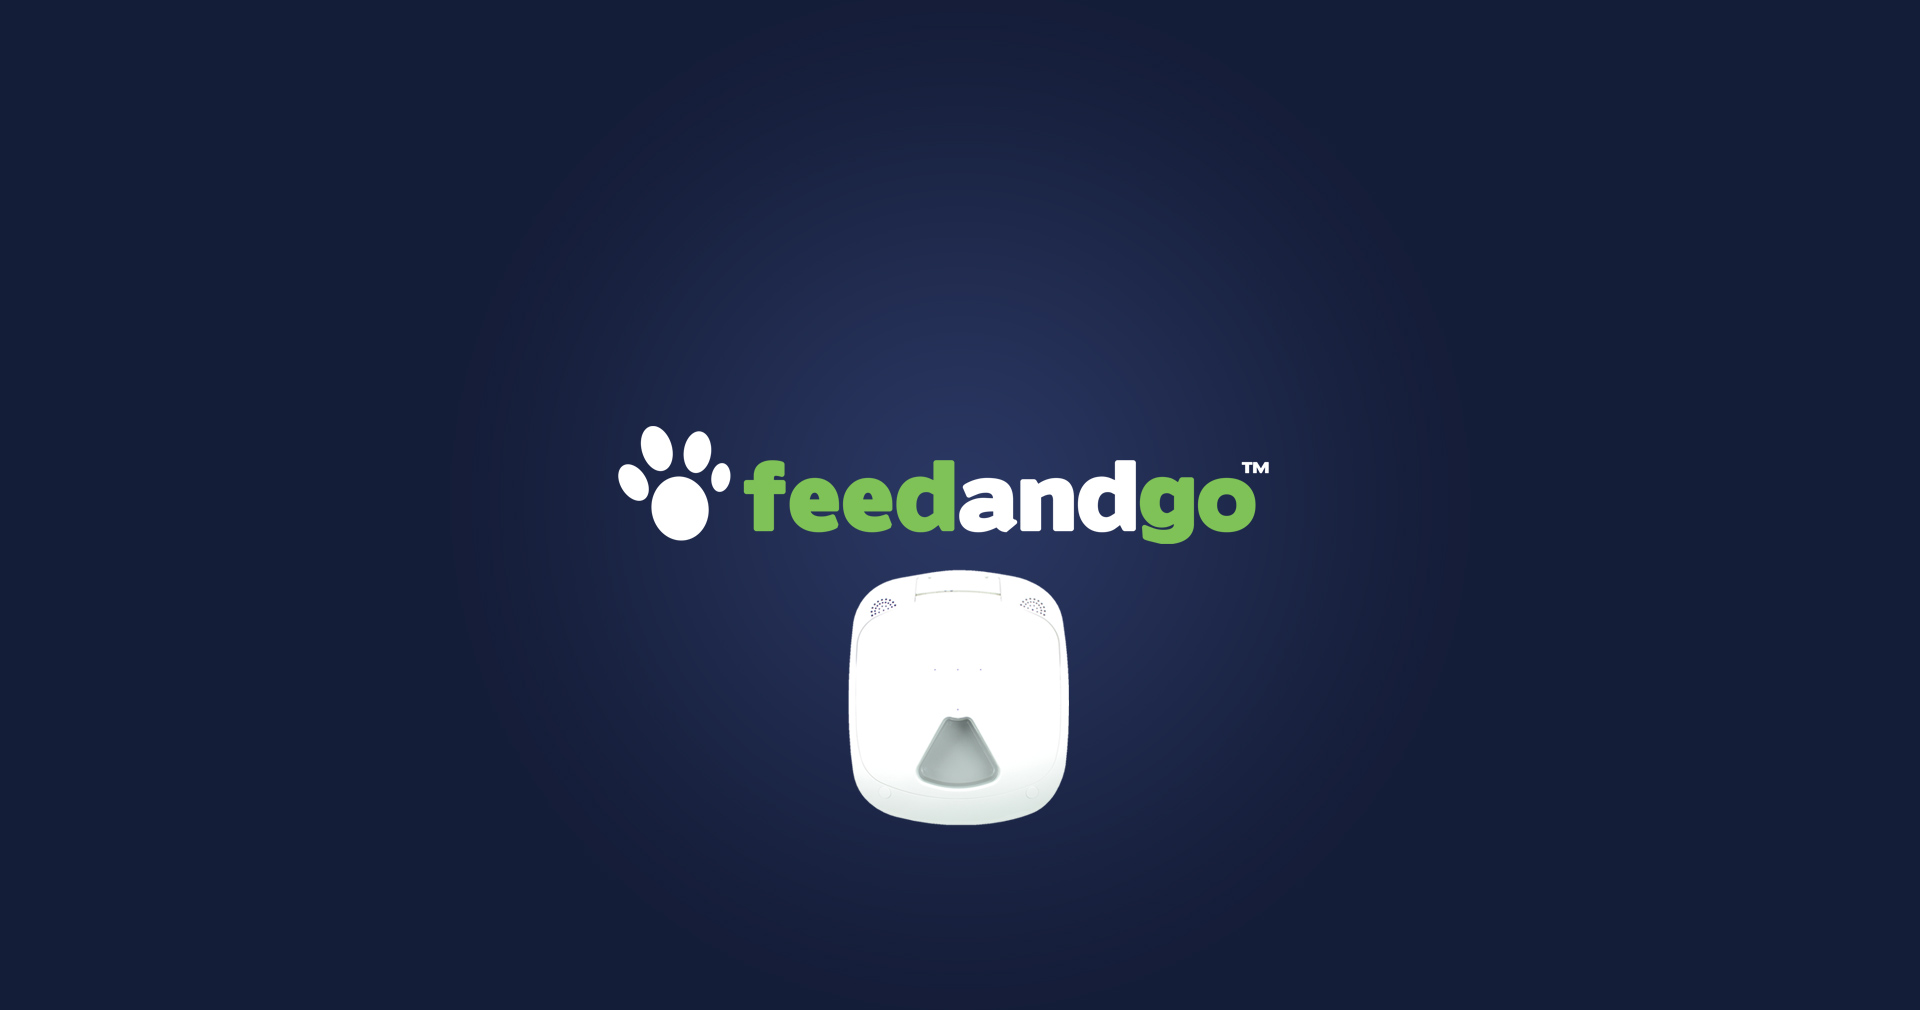 FEED AND GO